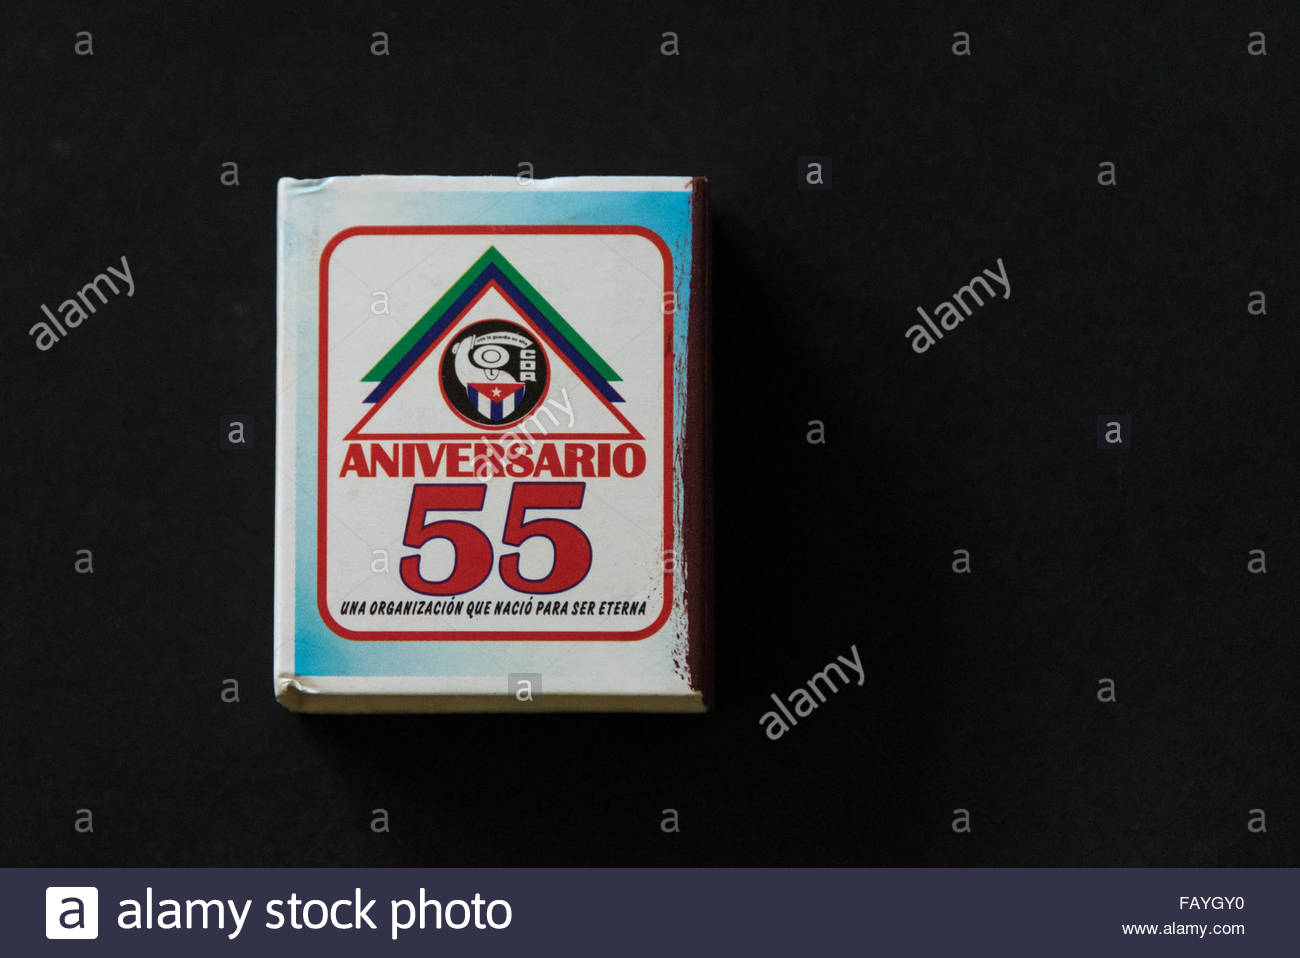 Match box on black background: match box use for government propaganda an organization that was born to be eternal. - Stock Image